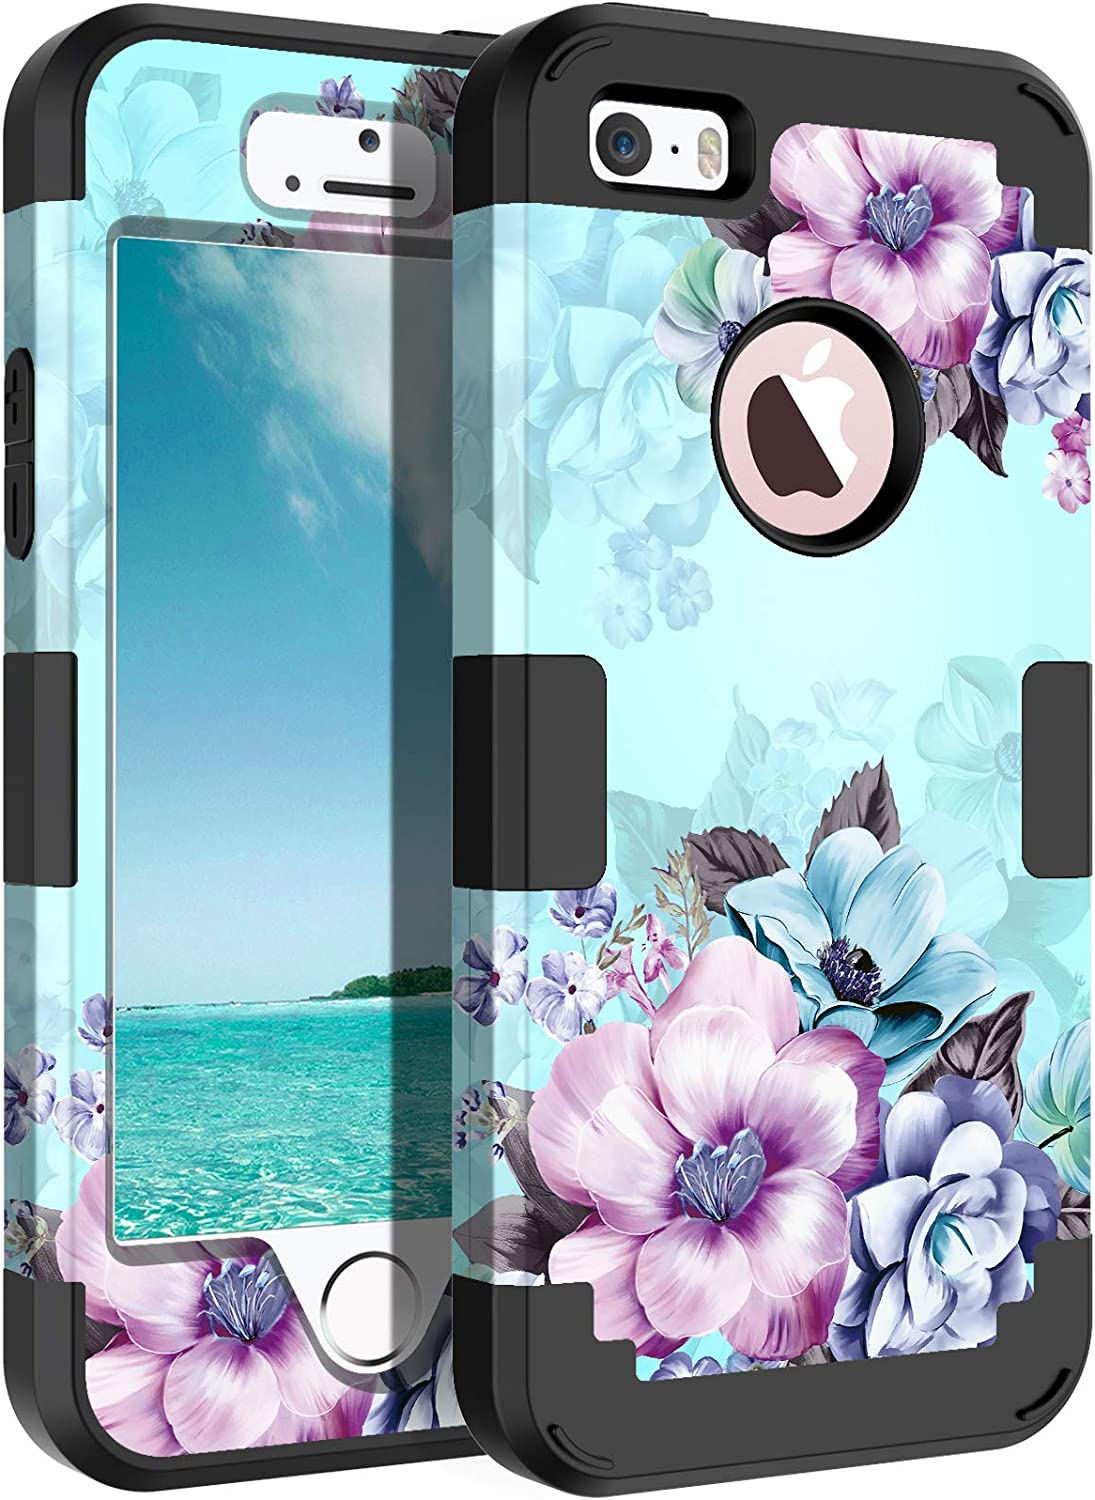 Casetego Compatible with iPhone 5 5S SE Case,Floral Three Layer Heavy Duty Hybrid Sturdy Shockproof Full Body Protective Cover Case for Apple iPhone 5 5S SE,Blue Flower